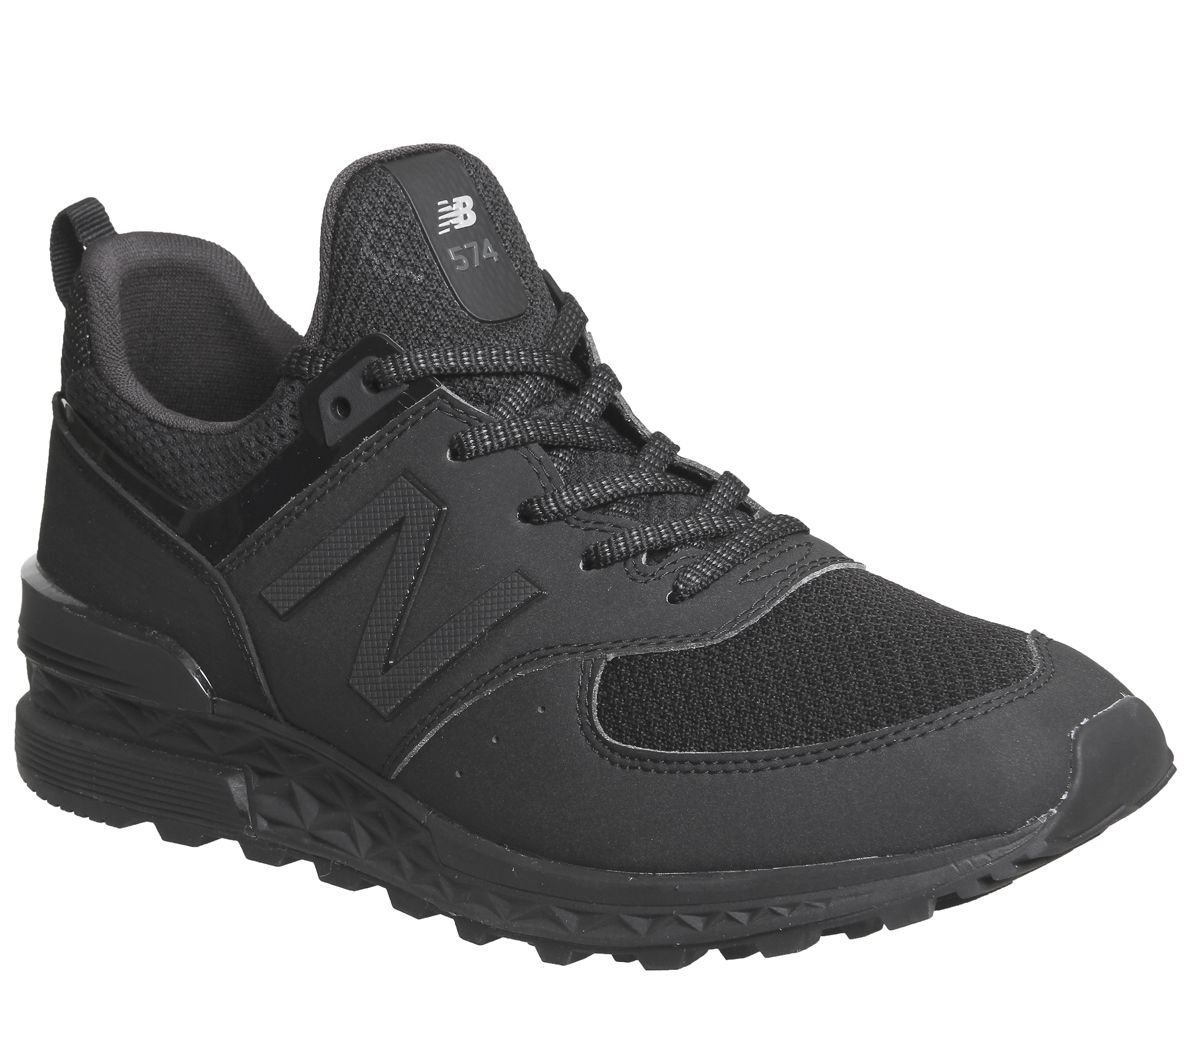 27fa696144d5f New Balance 574s Black Tech - His trainers